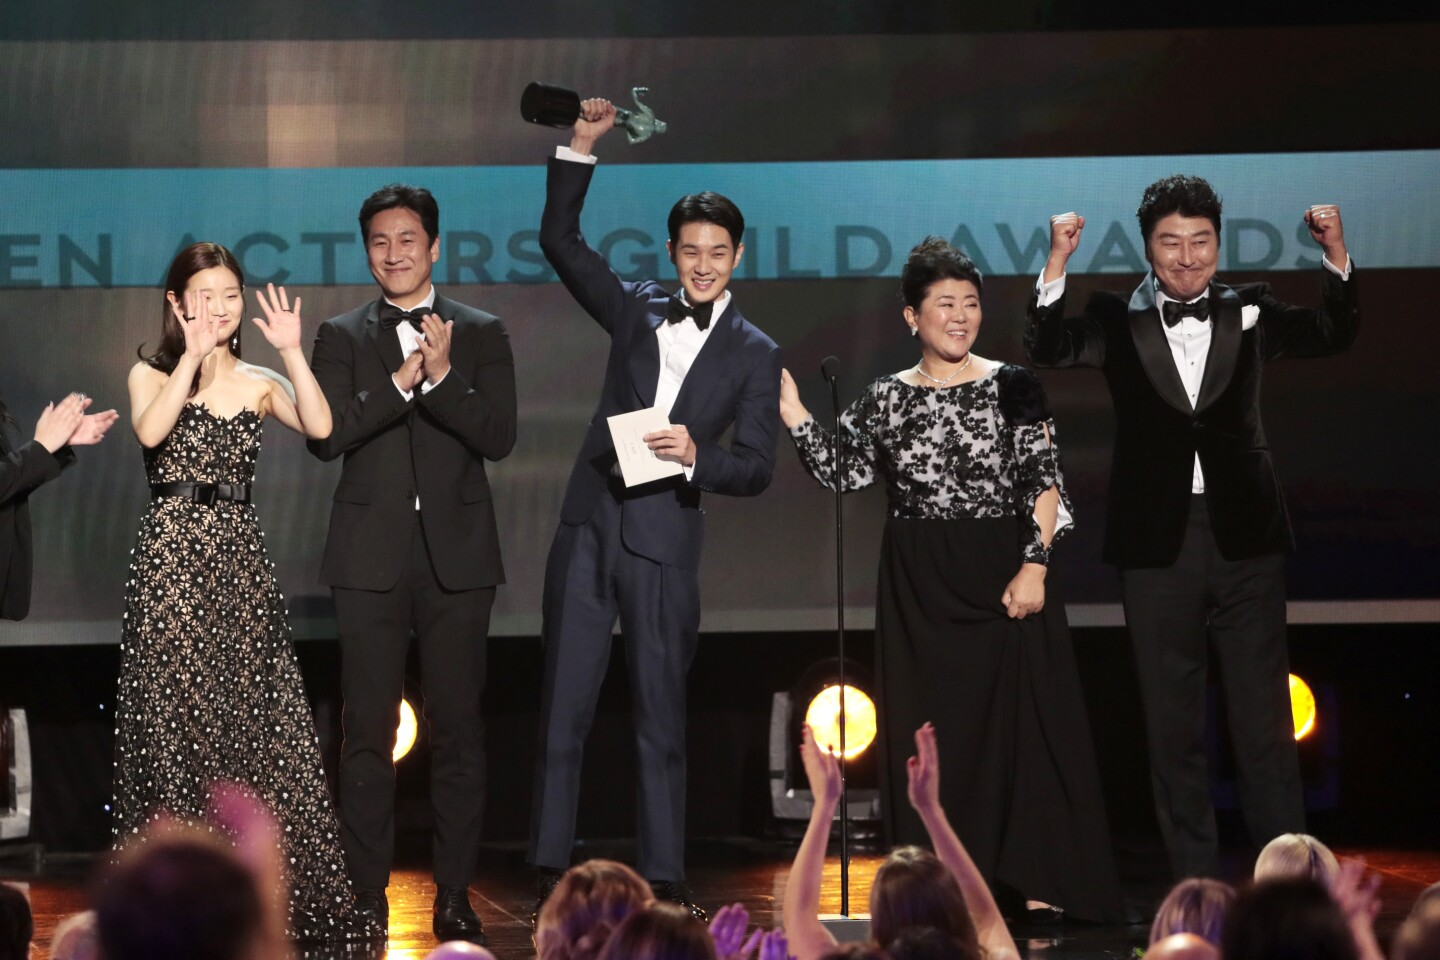 Sag Awards 2020 Show Highlights Los Angeles Times